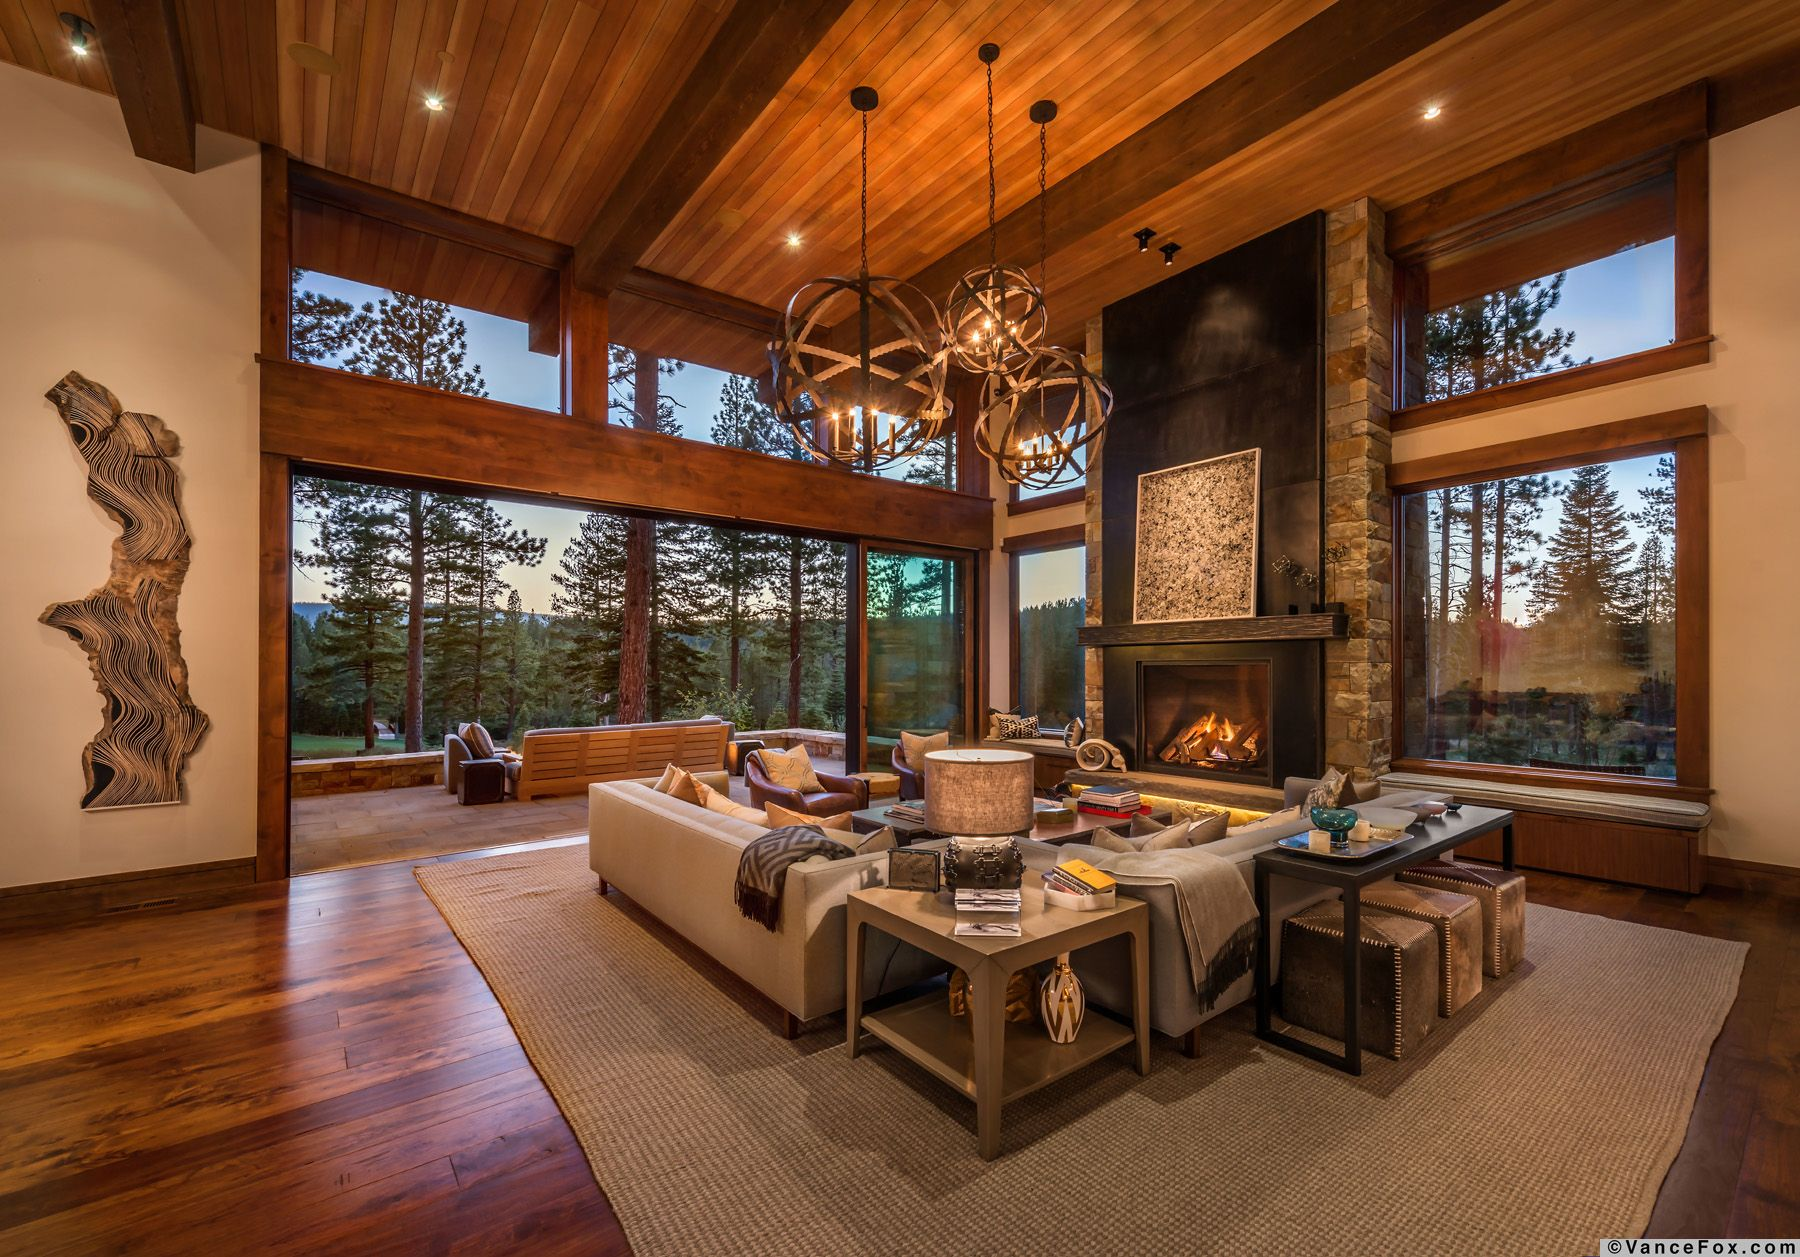 Warm modernism best describes this mountain retreat